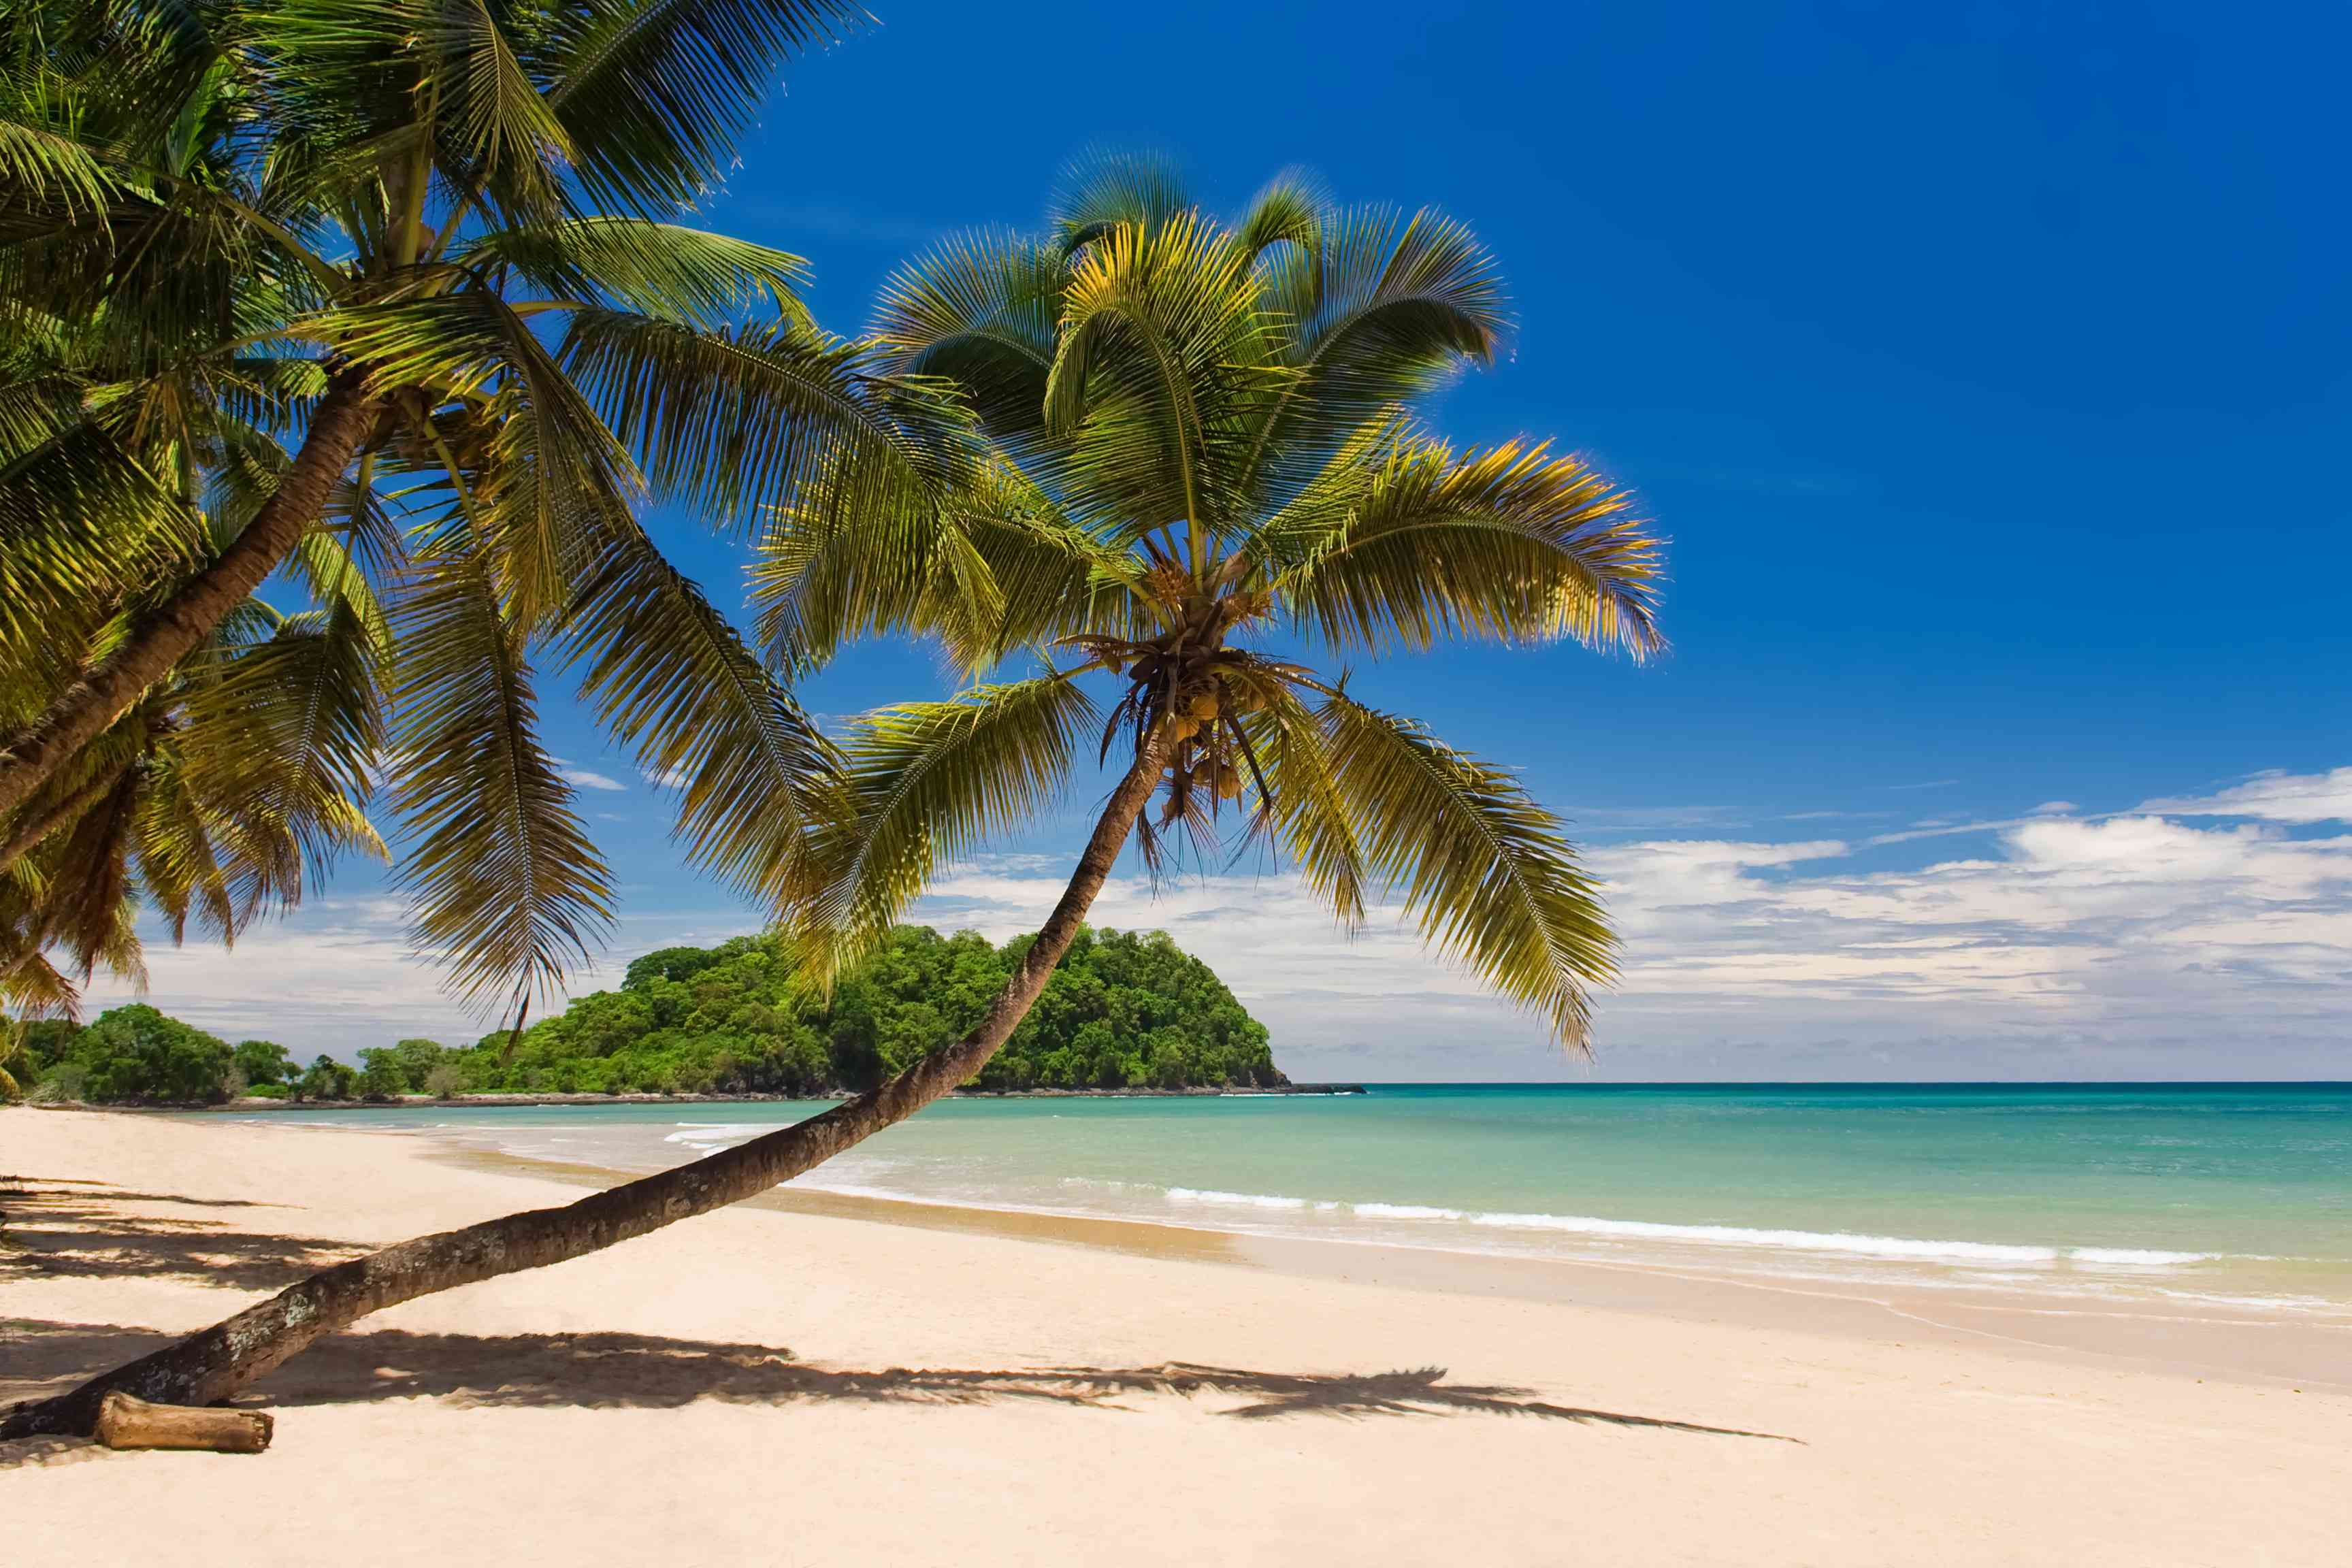 Tropical beach with palm trees on Nosy Be, Madagascar